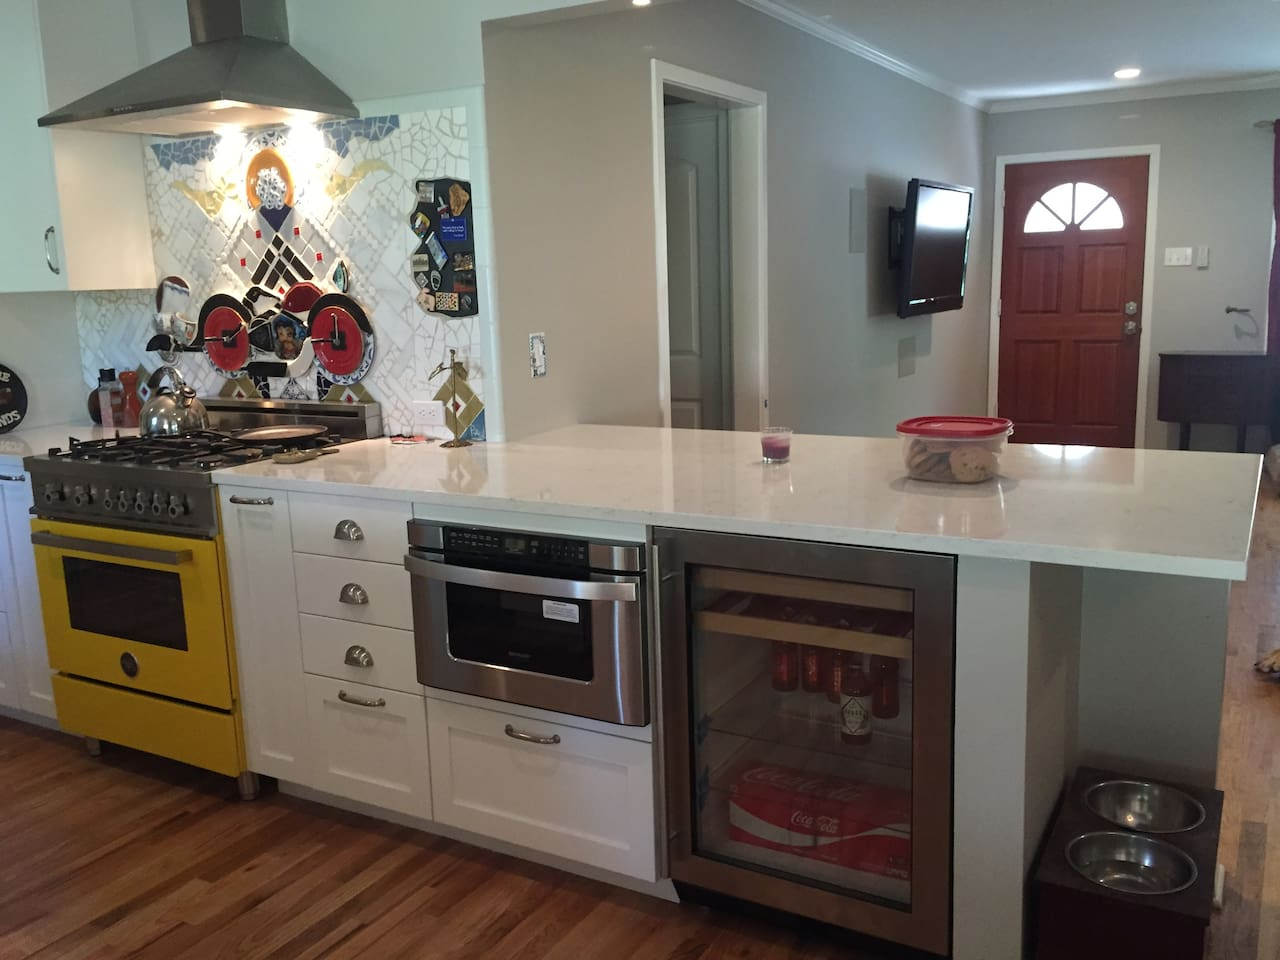 Newly remodeled kitchen and all new appliances